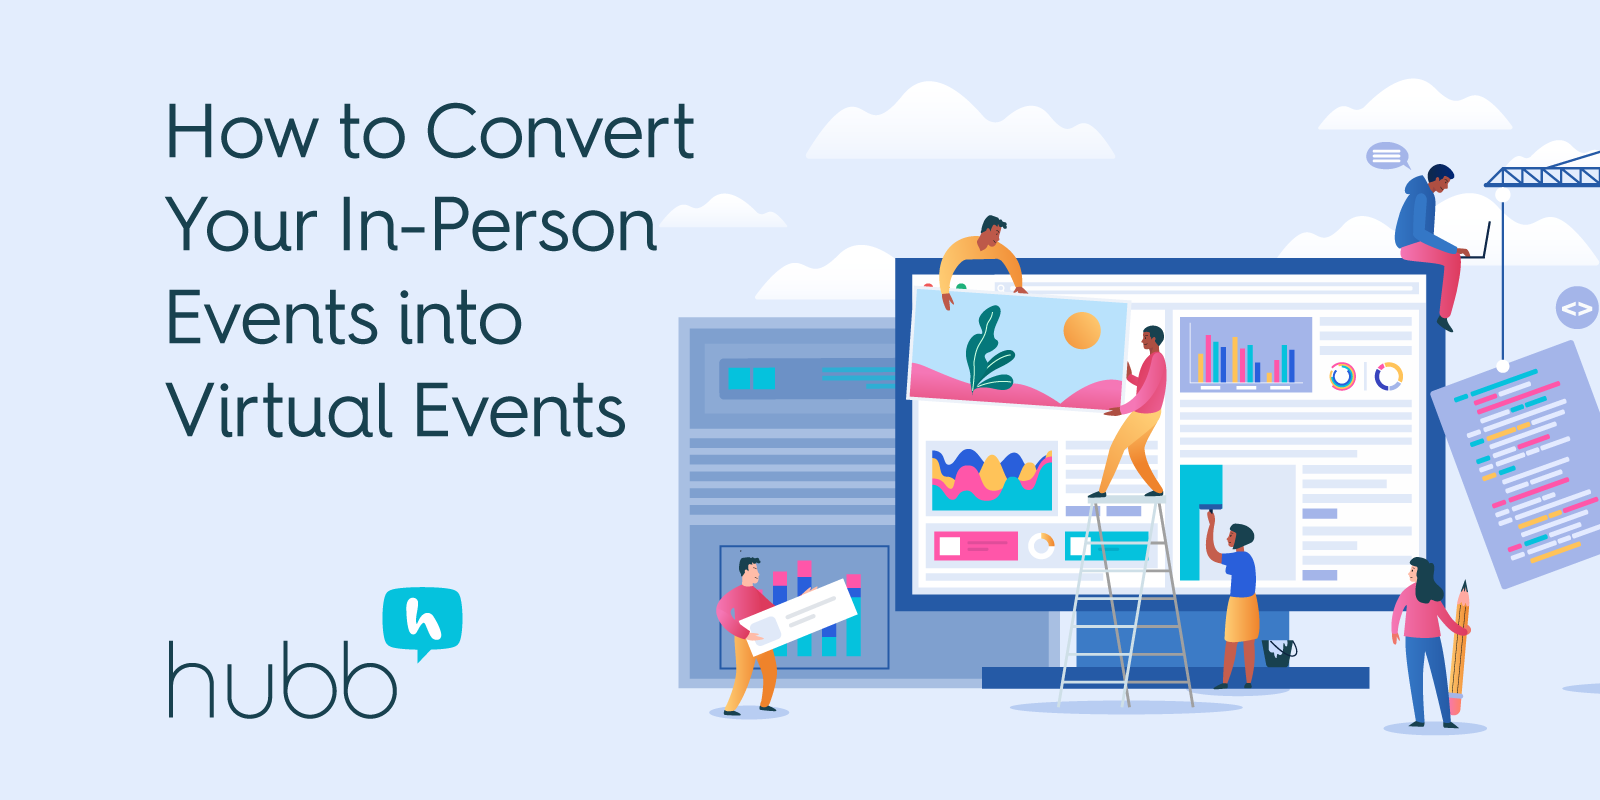 Convert Your In-Person Events into Virtual Events